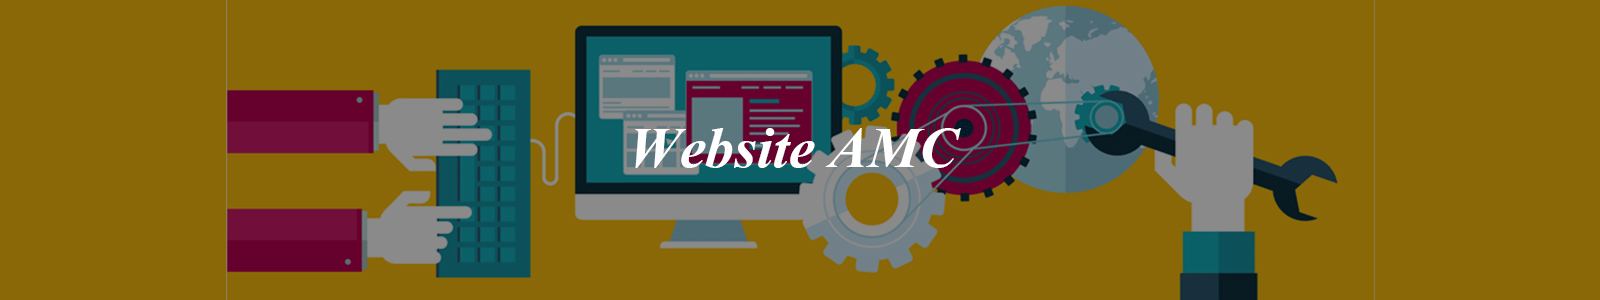 website-amc